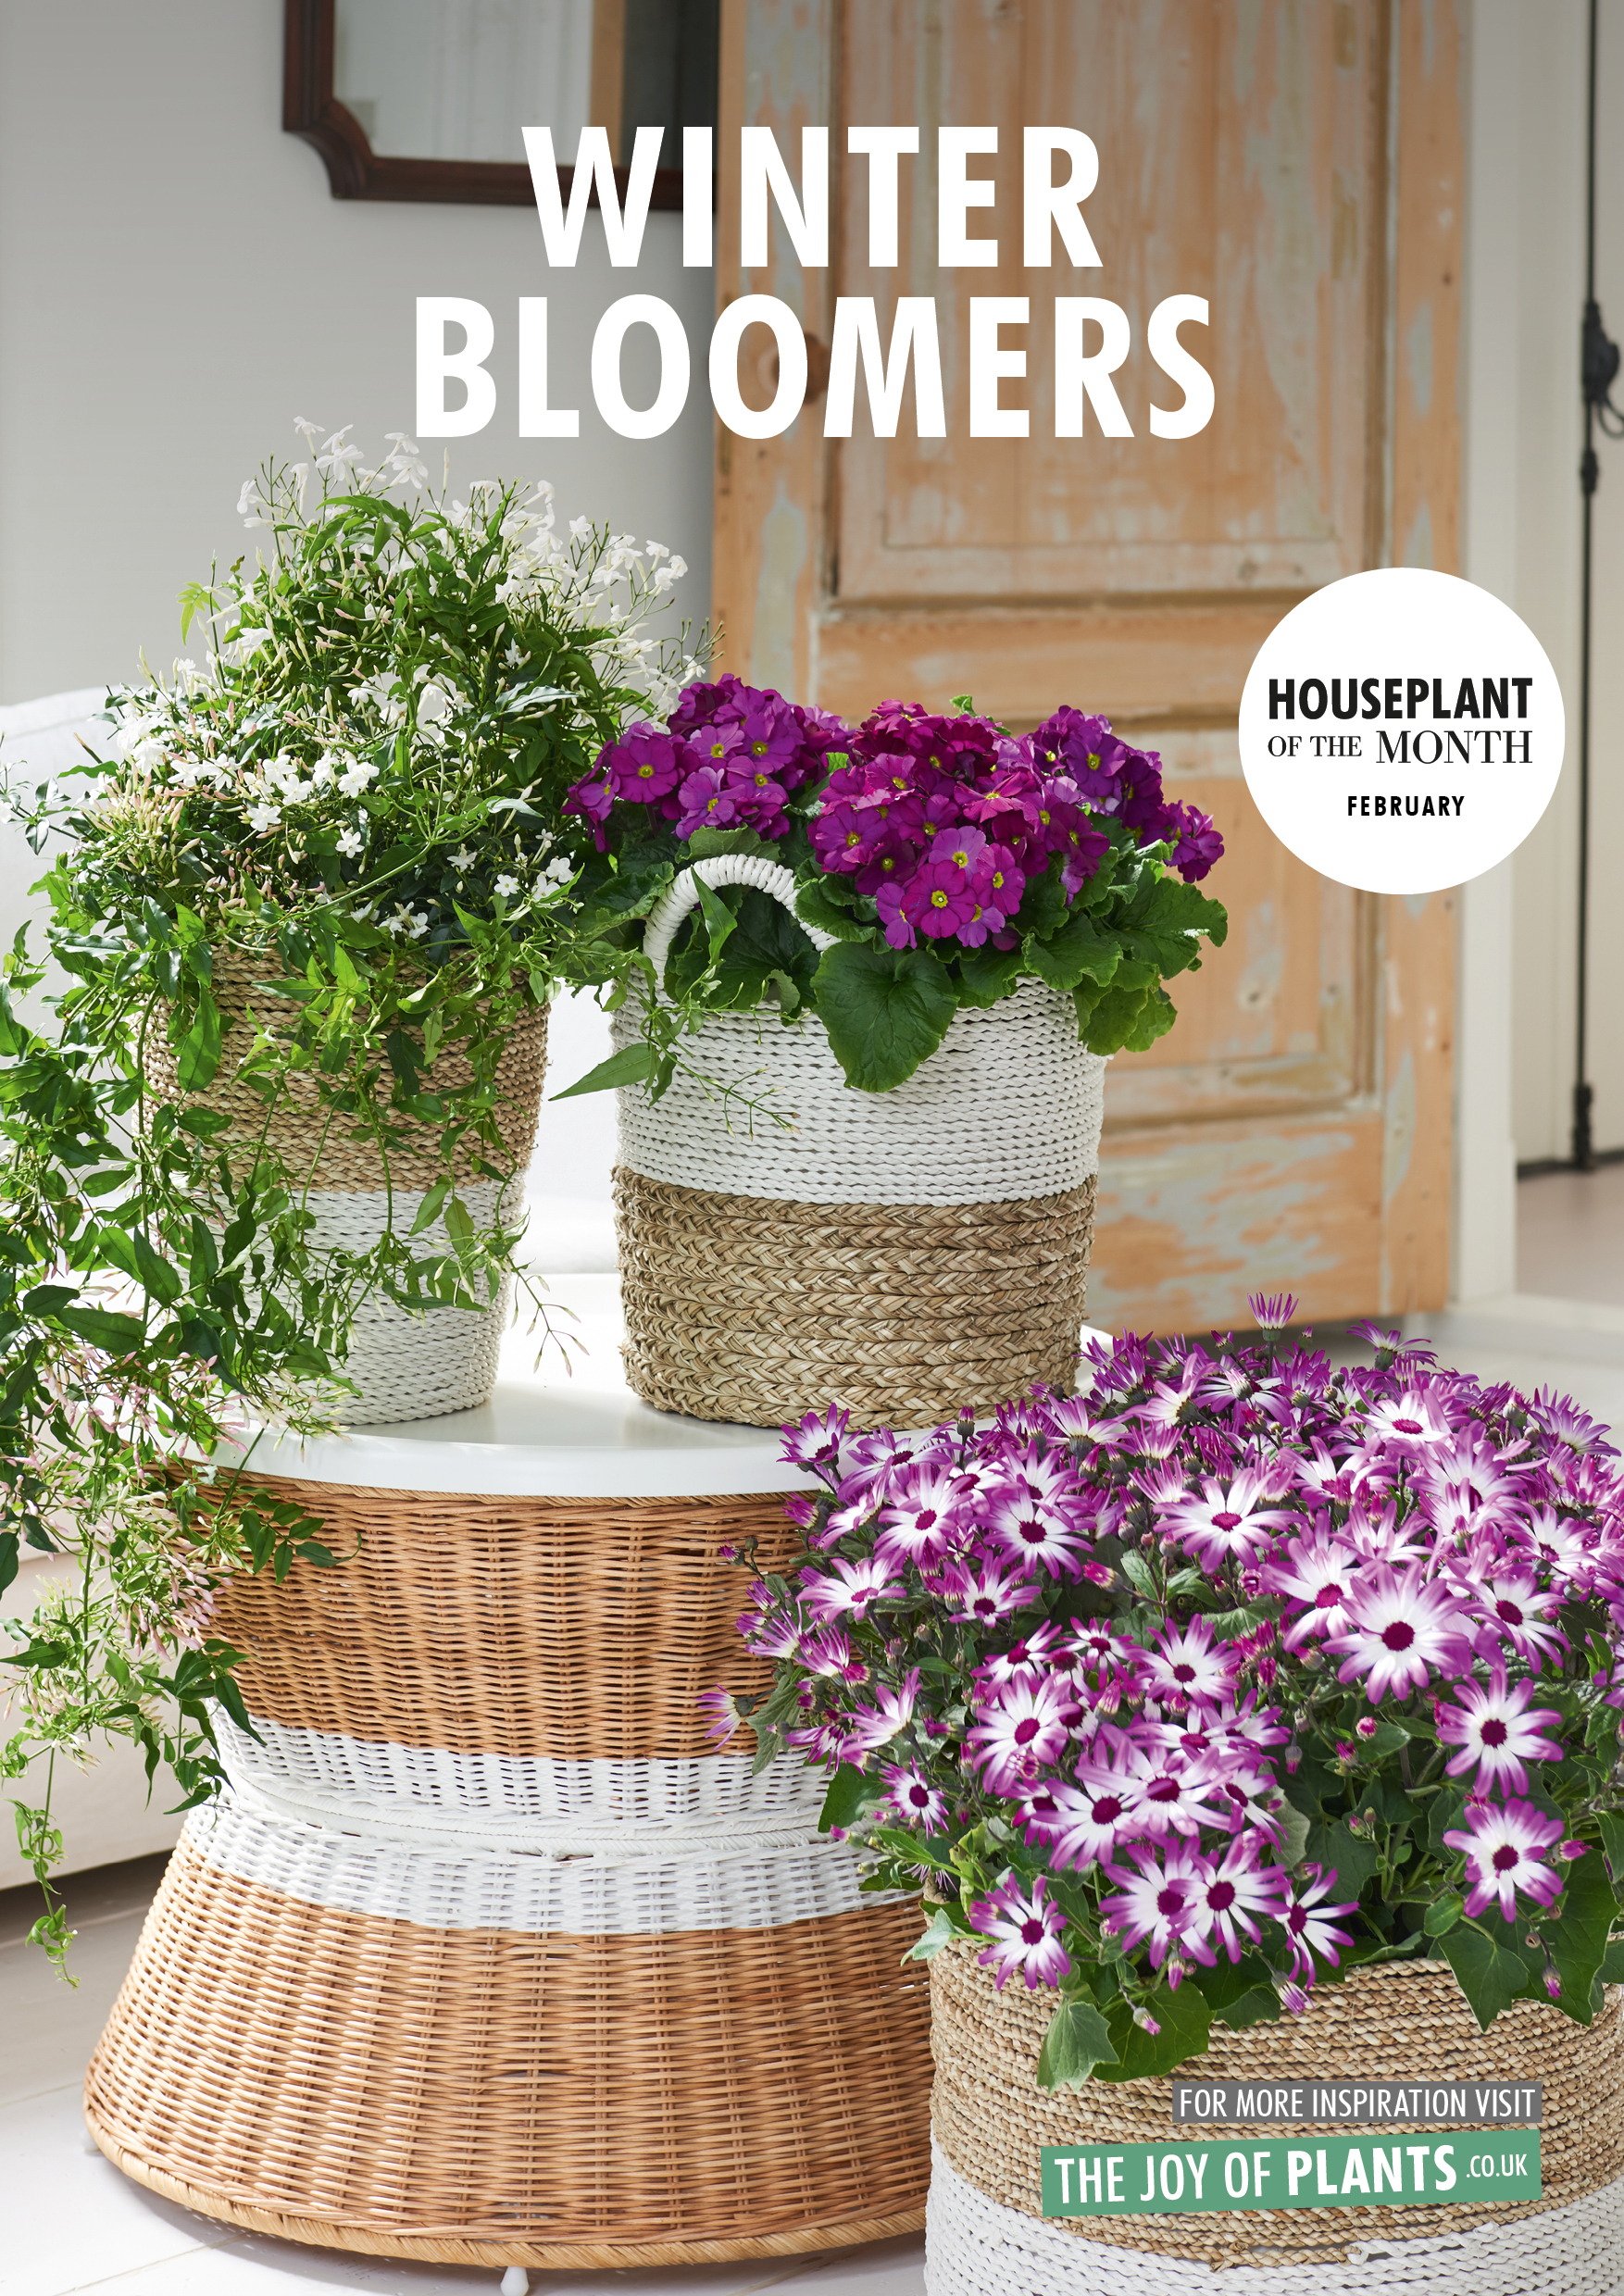 February 2018: Winter bloomers  Houseplant of the month